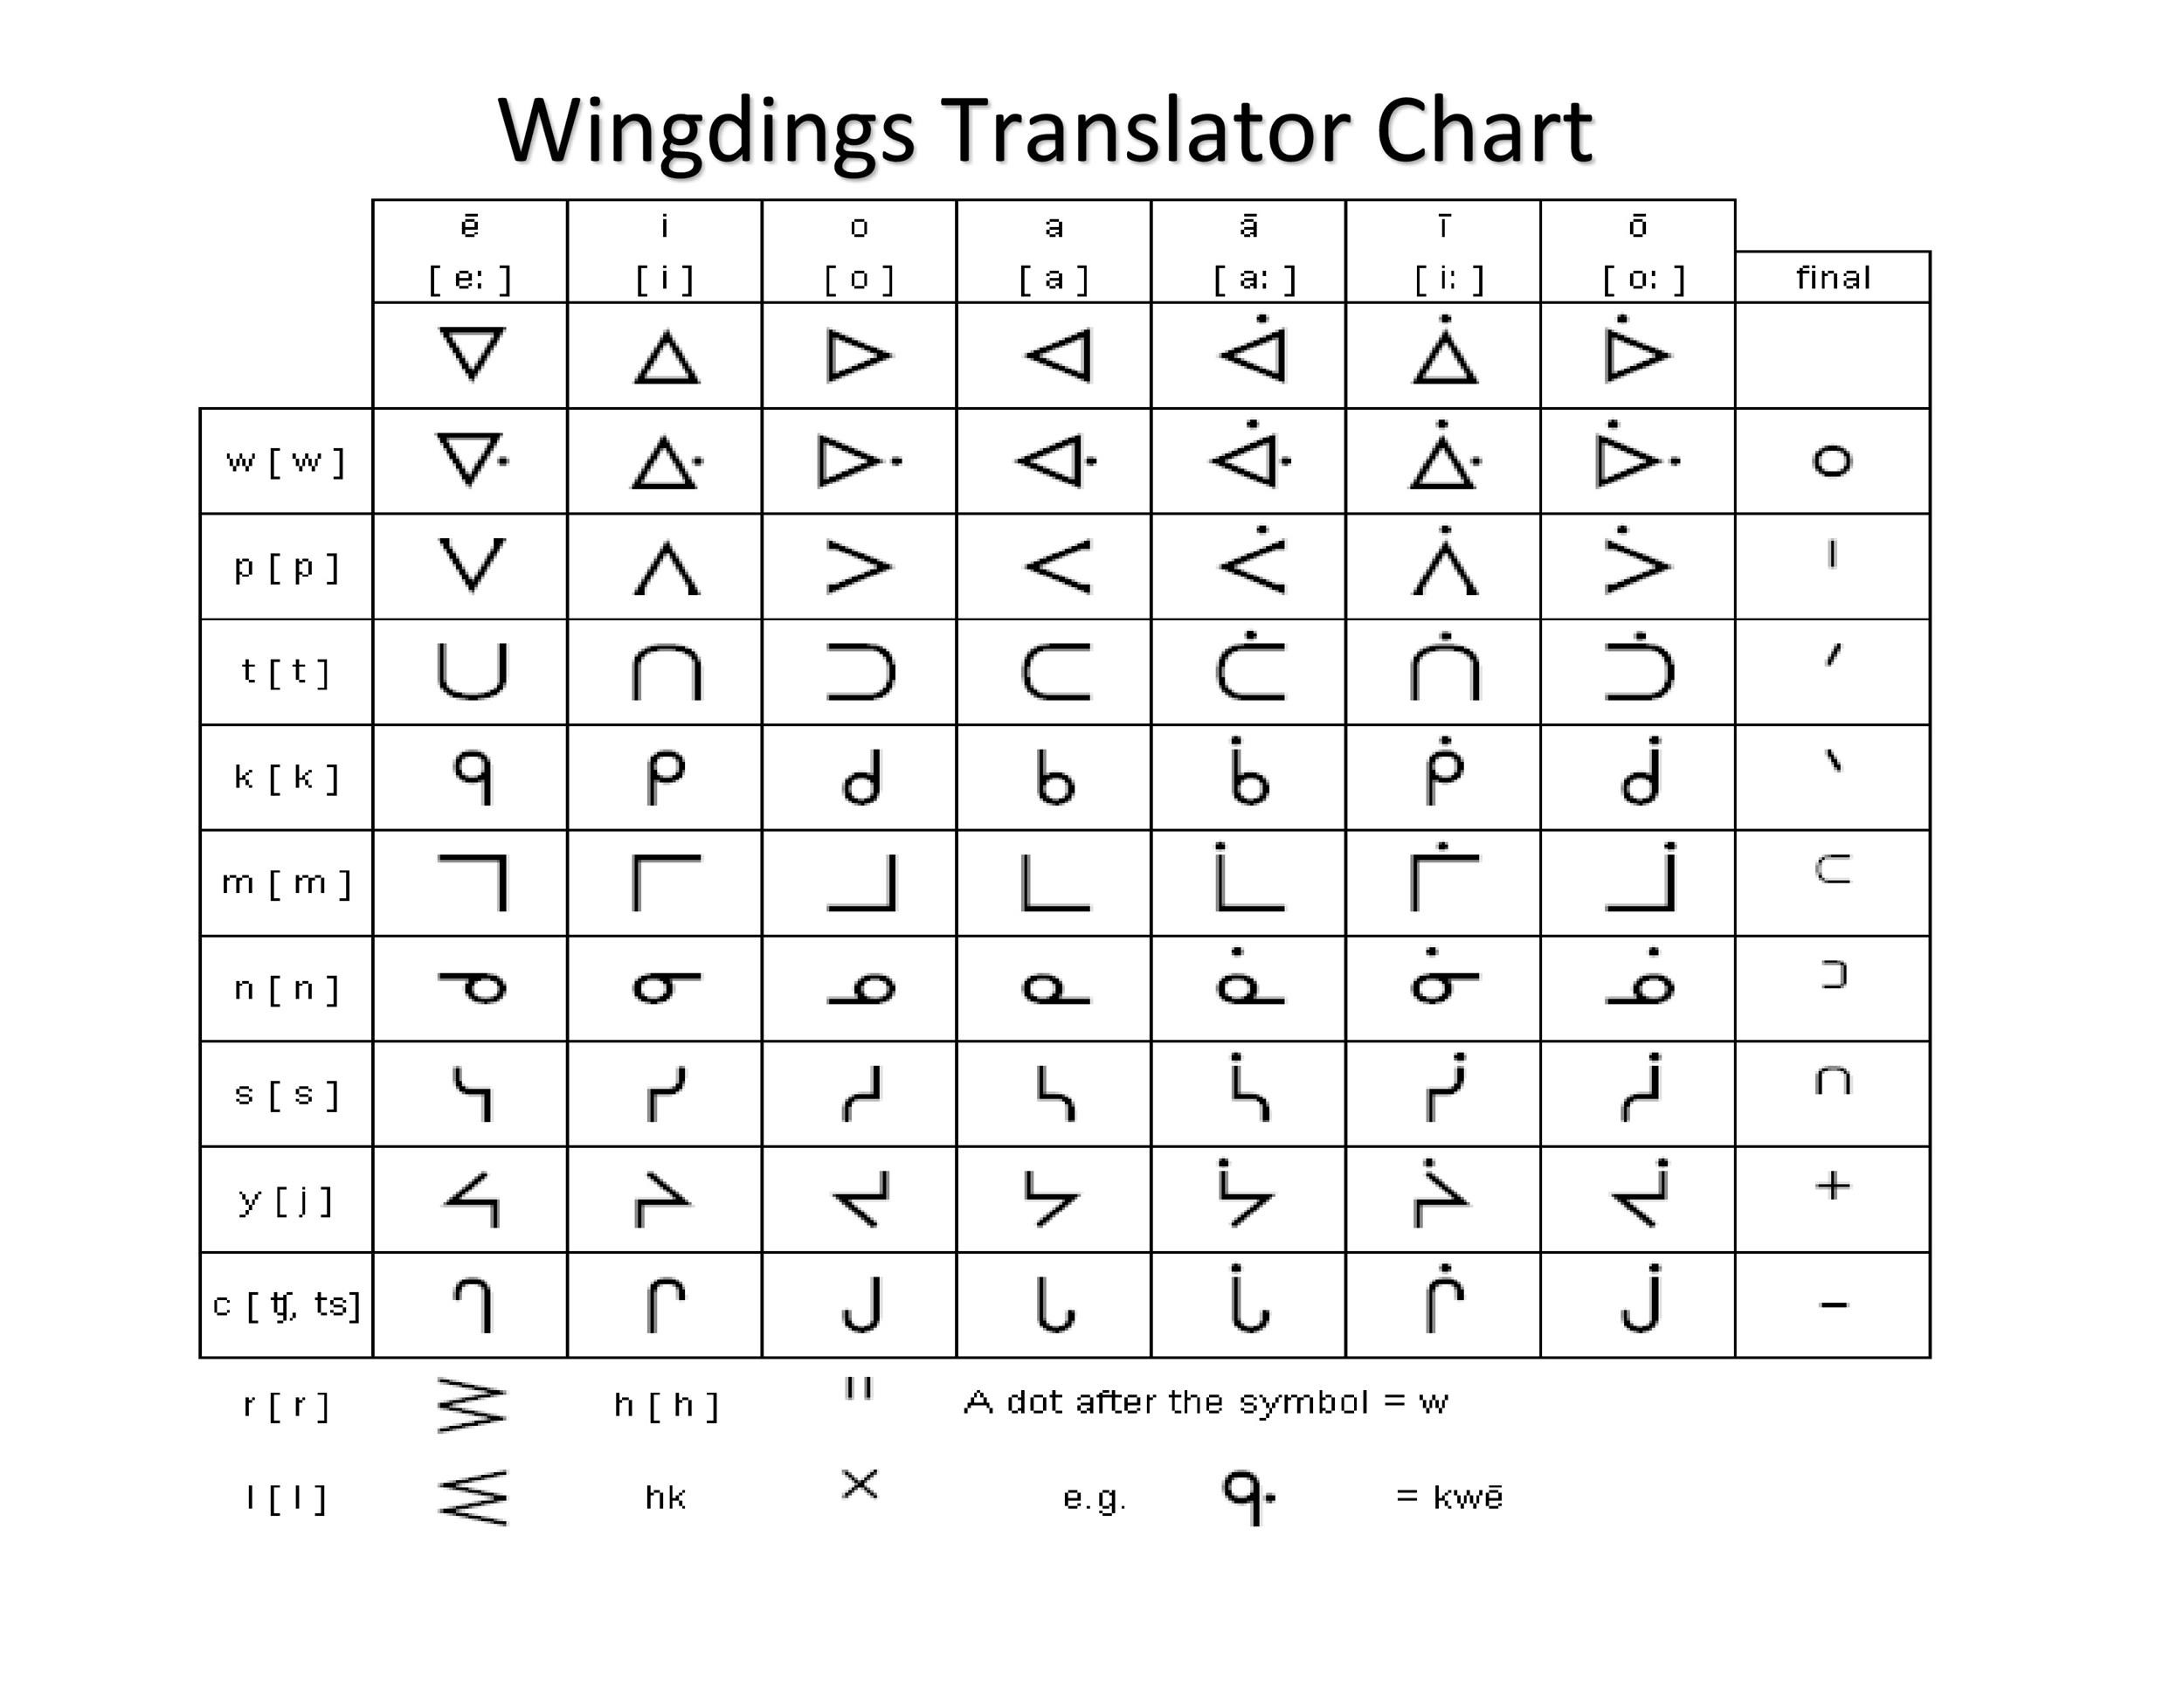 Free wingdings translator template 23